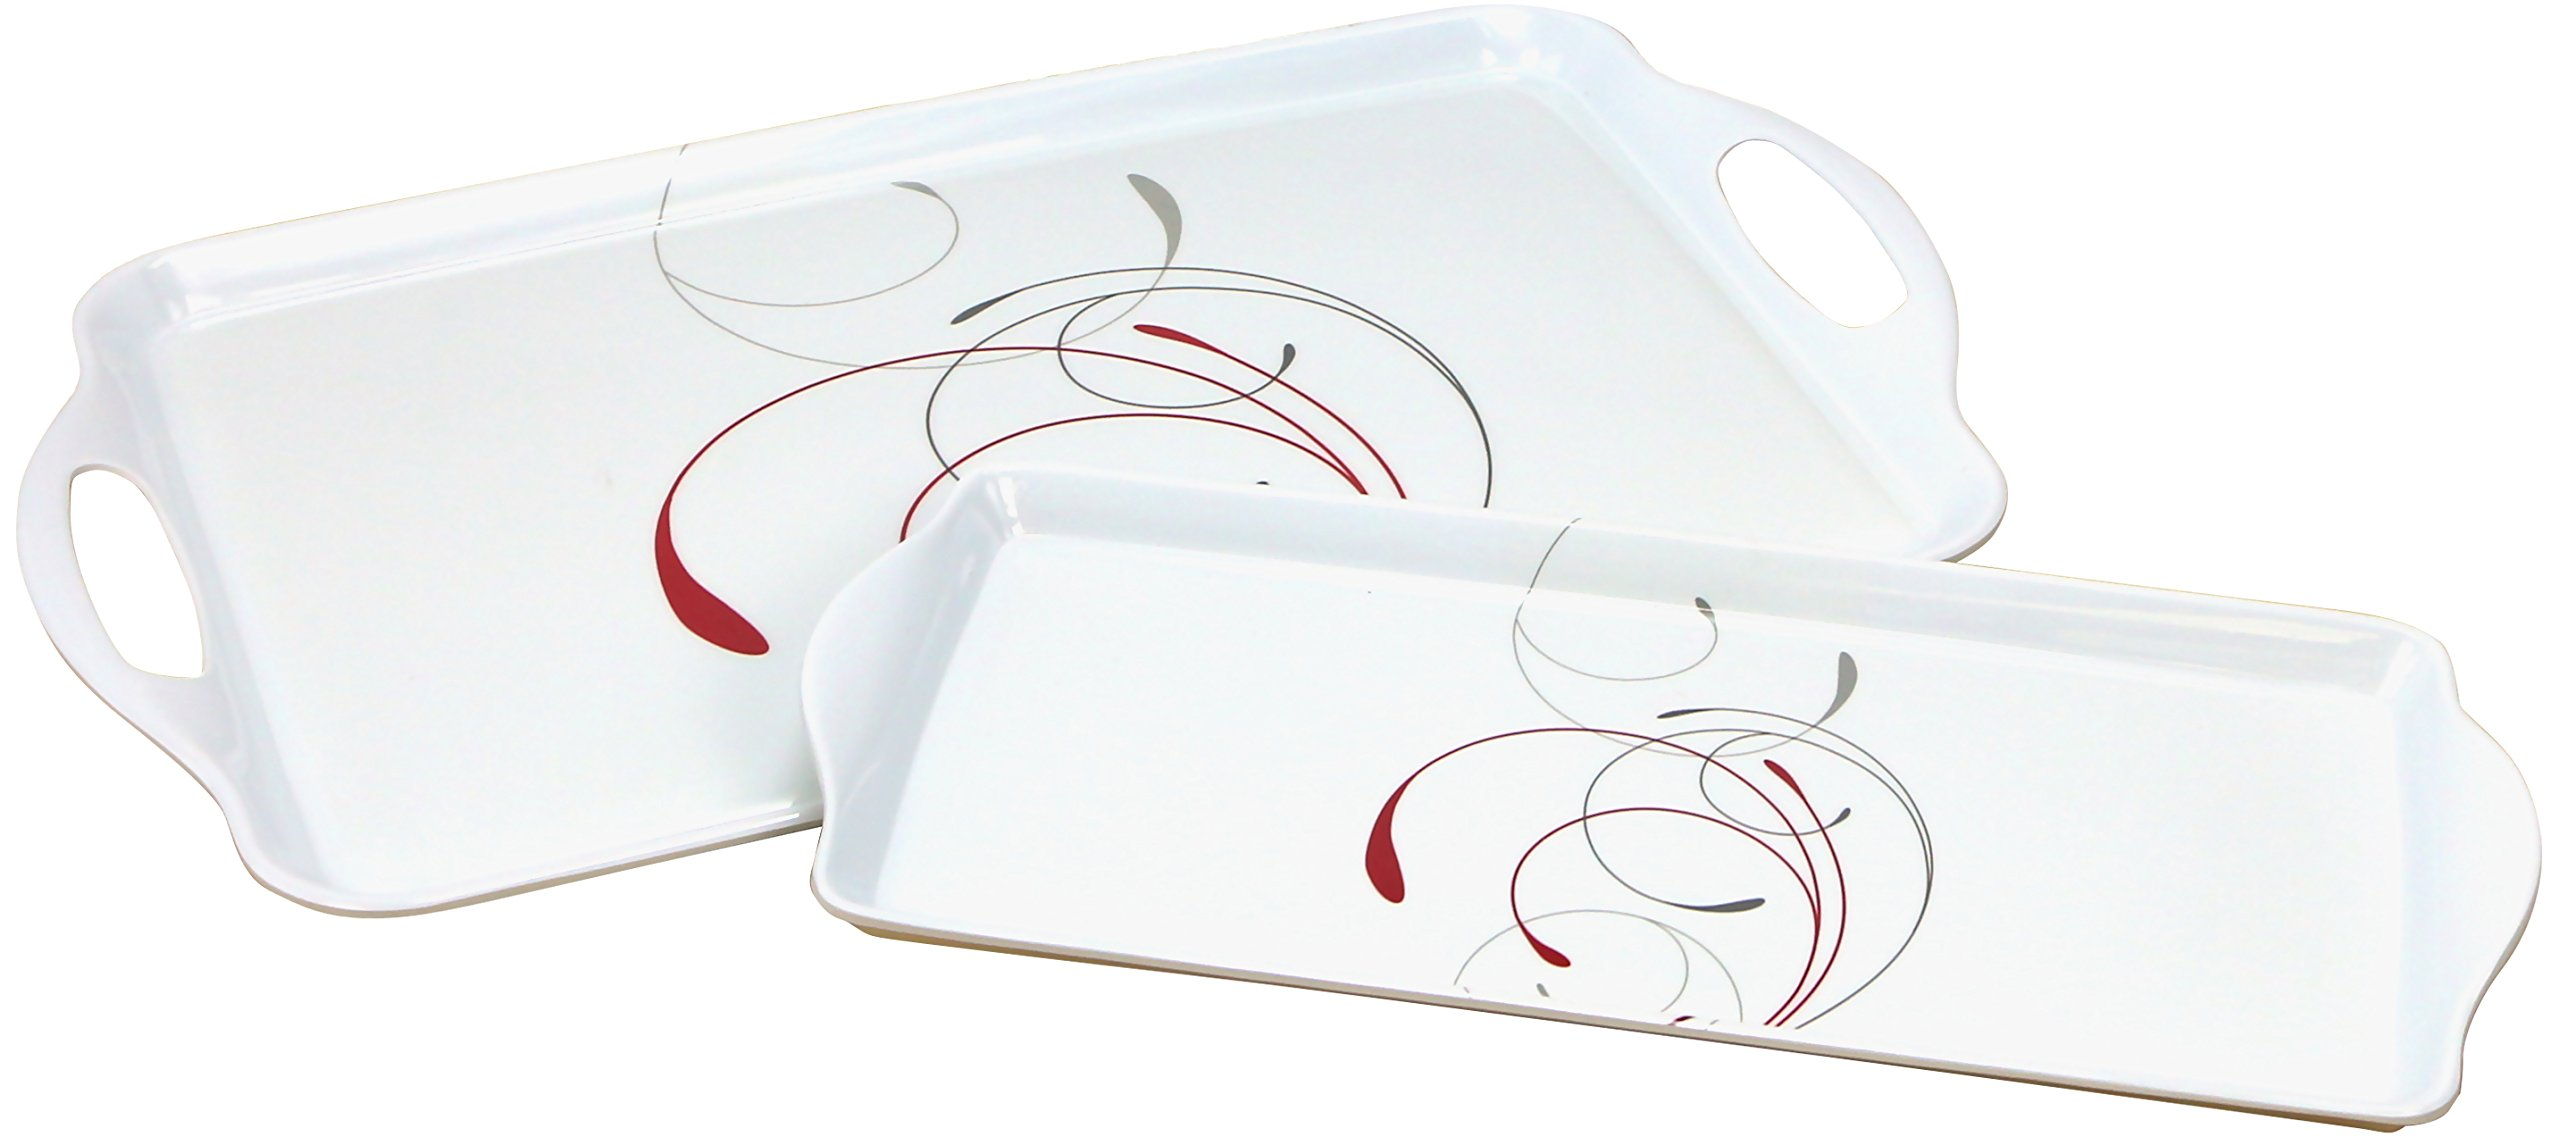 Corelle Coordinates Rectangular and Tidbit Serving Tray Set, White, Splendor